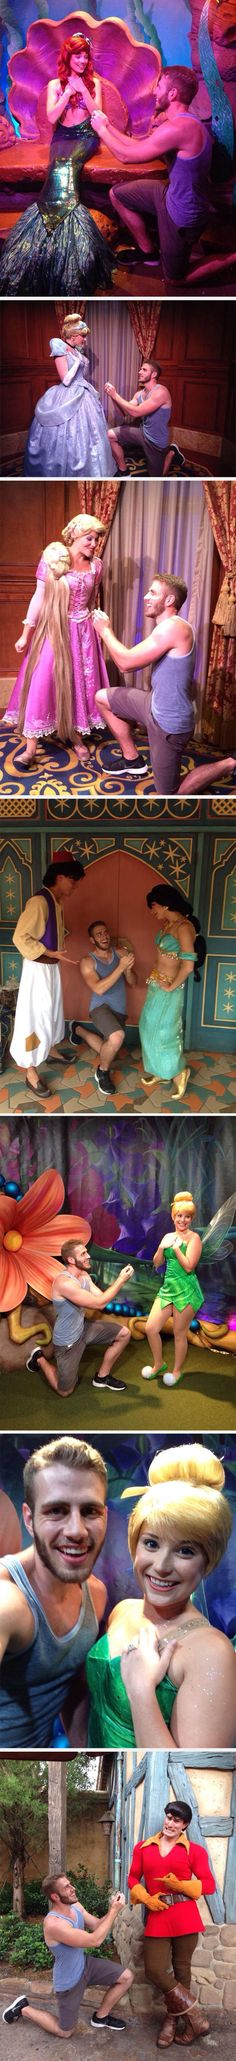 This Man Proposed To Disney Princesses i think the last one is my favorite the look on his face lol